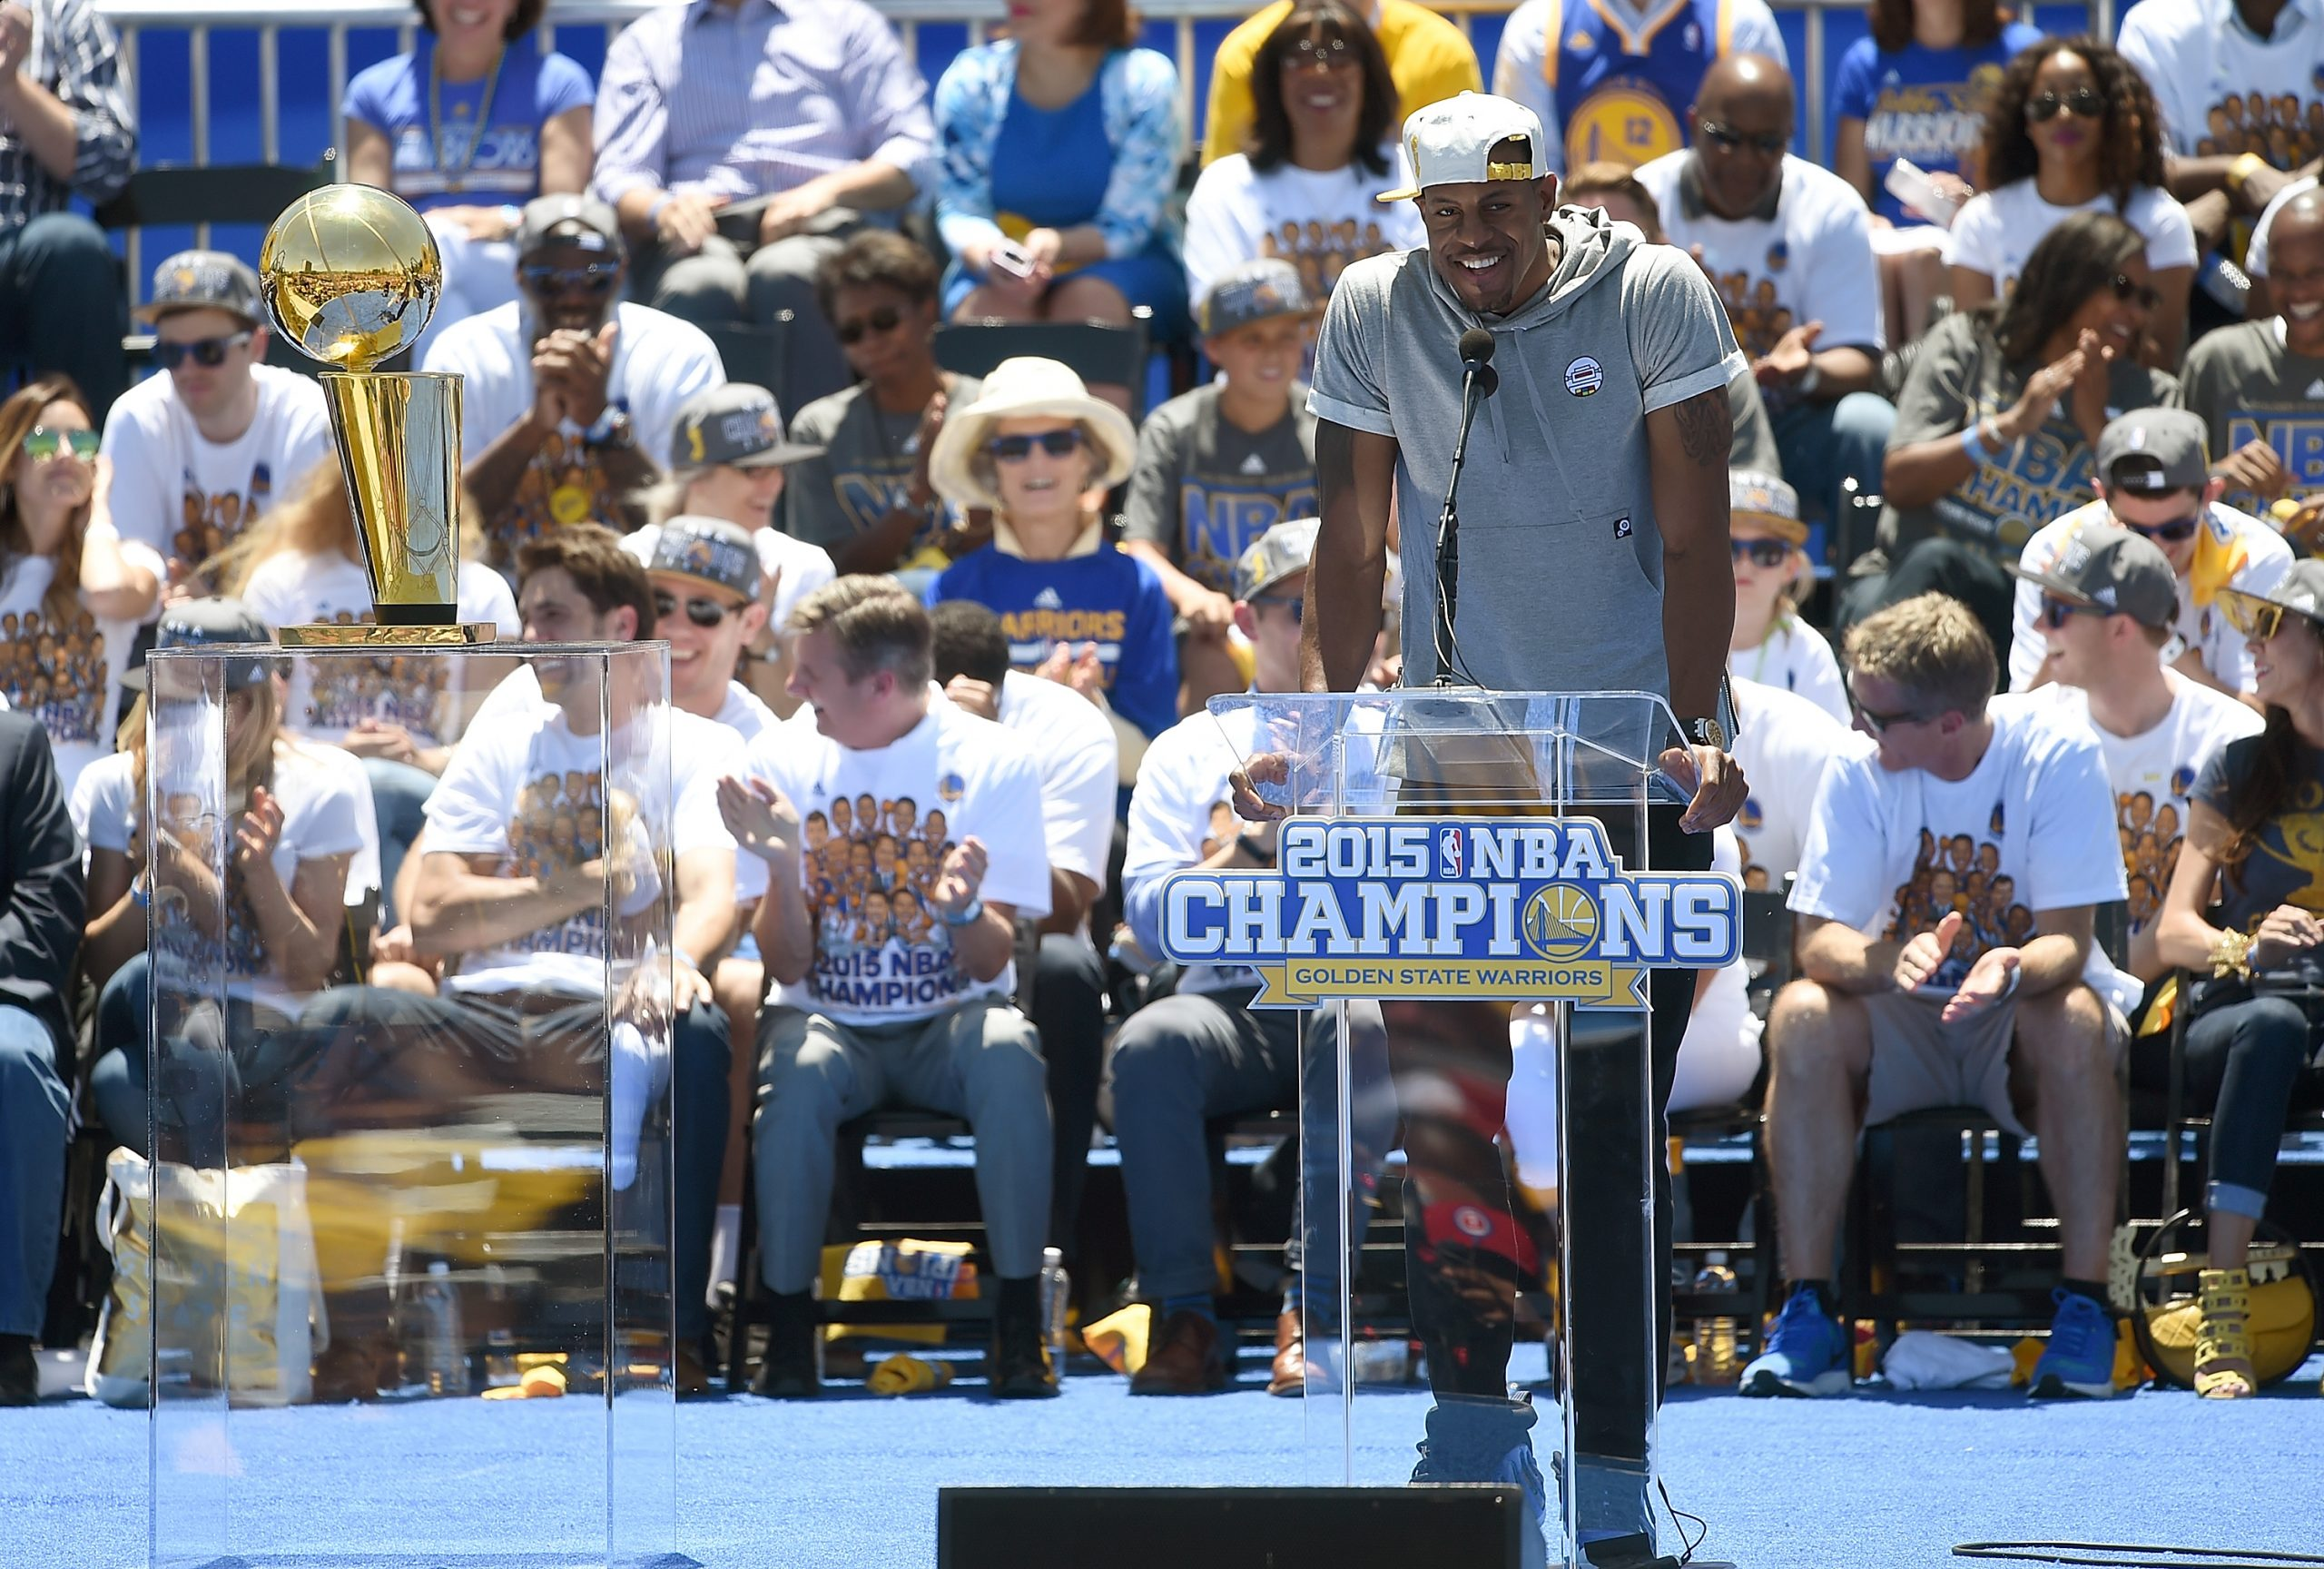 Andre Iguodala Signs Deal to Rejoin the Golden State Warriors